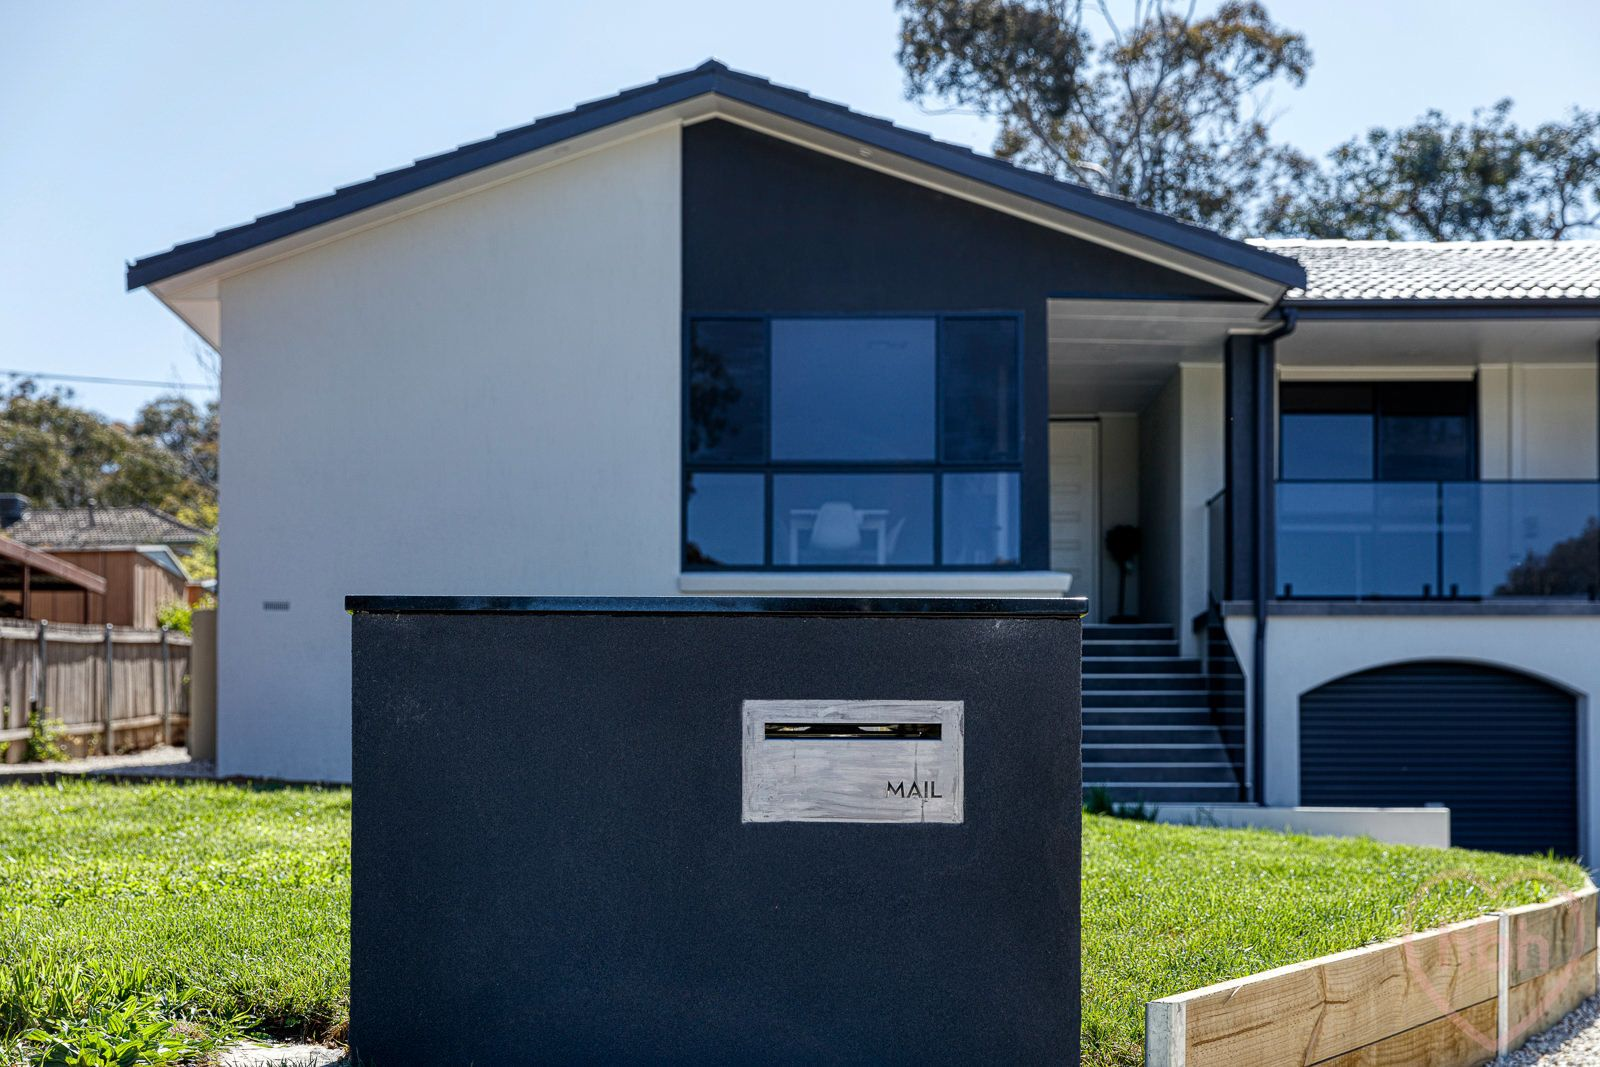 259 Kingsford Smith Drive, Spence ACT 2615, Image 0